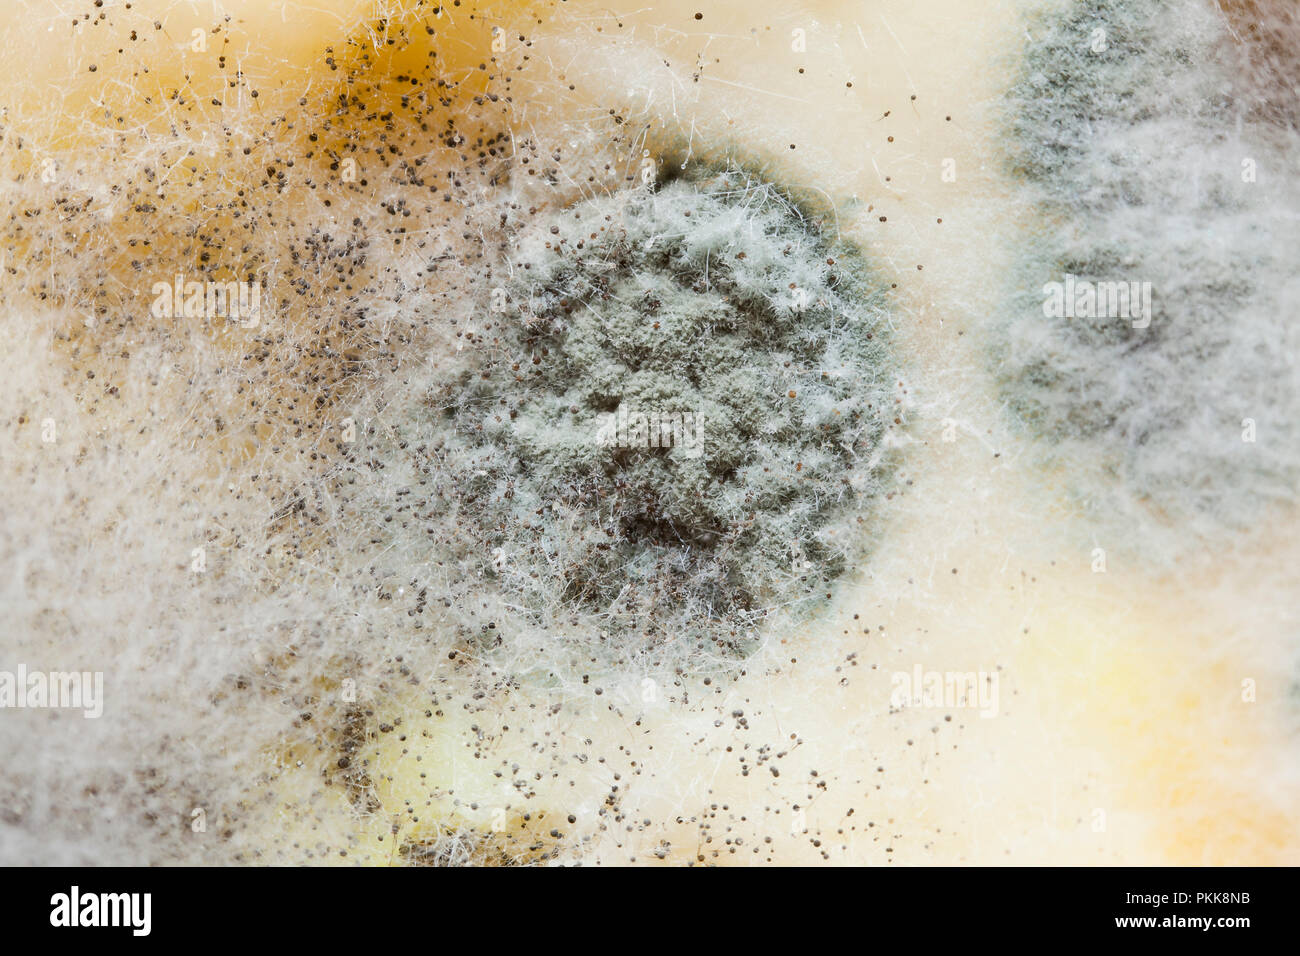 Mold growing on food (moldy food, mouldy food, food mold) - Stock Image